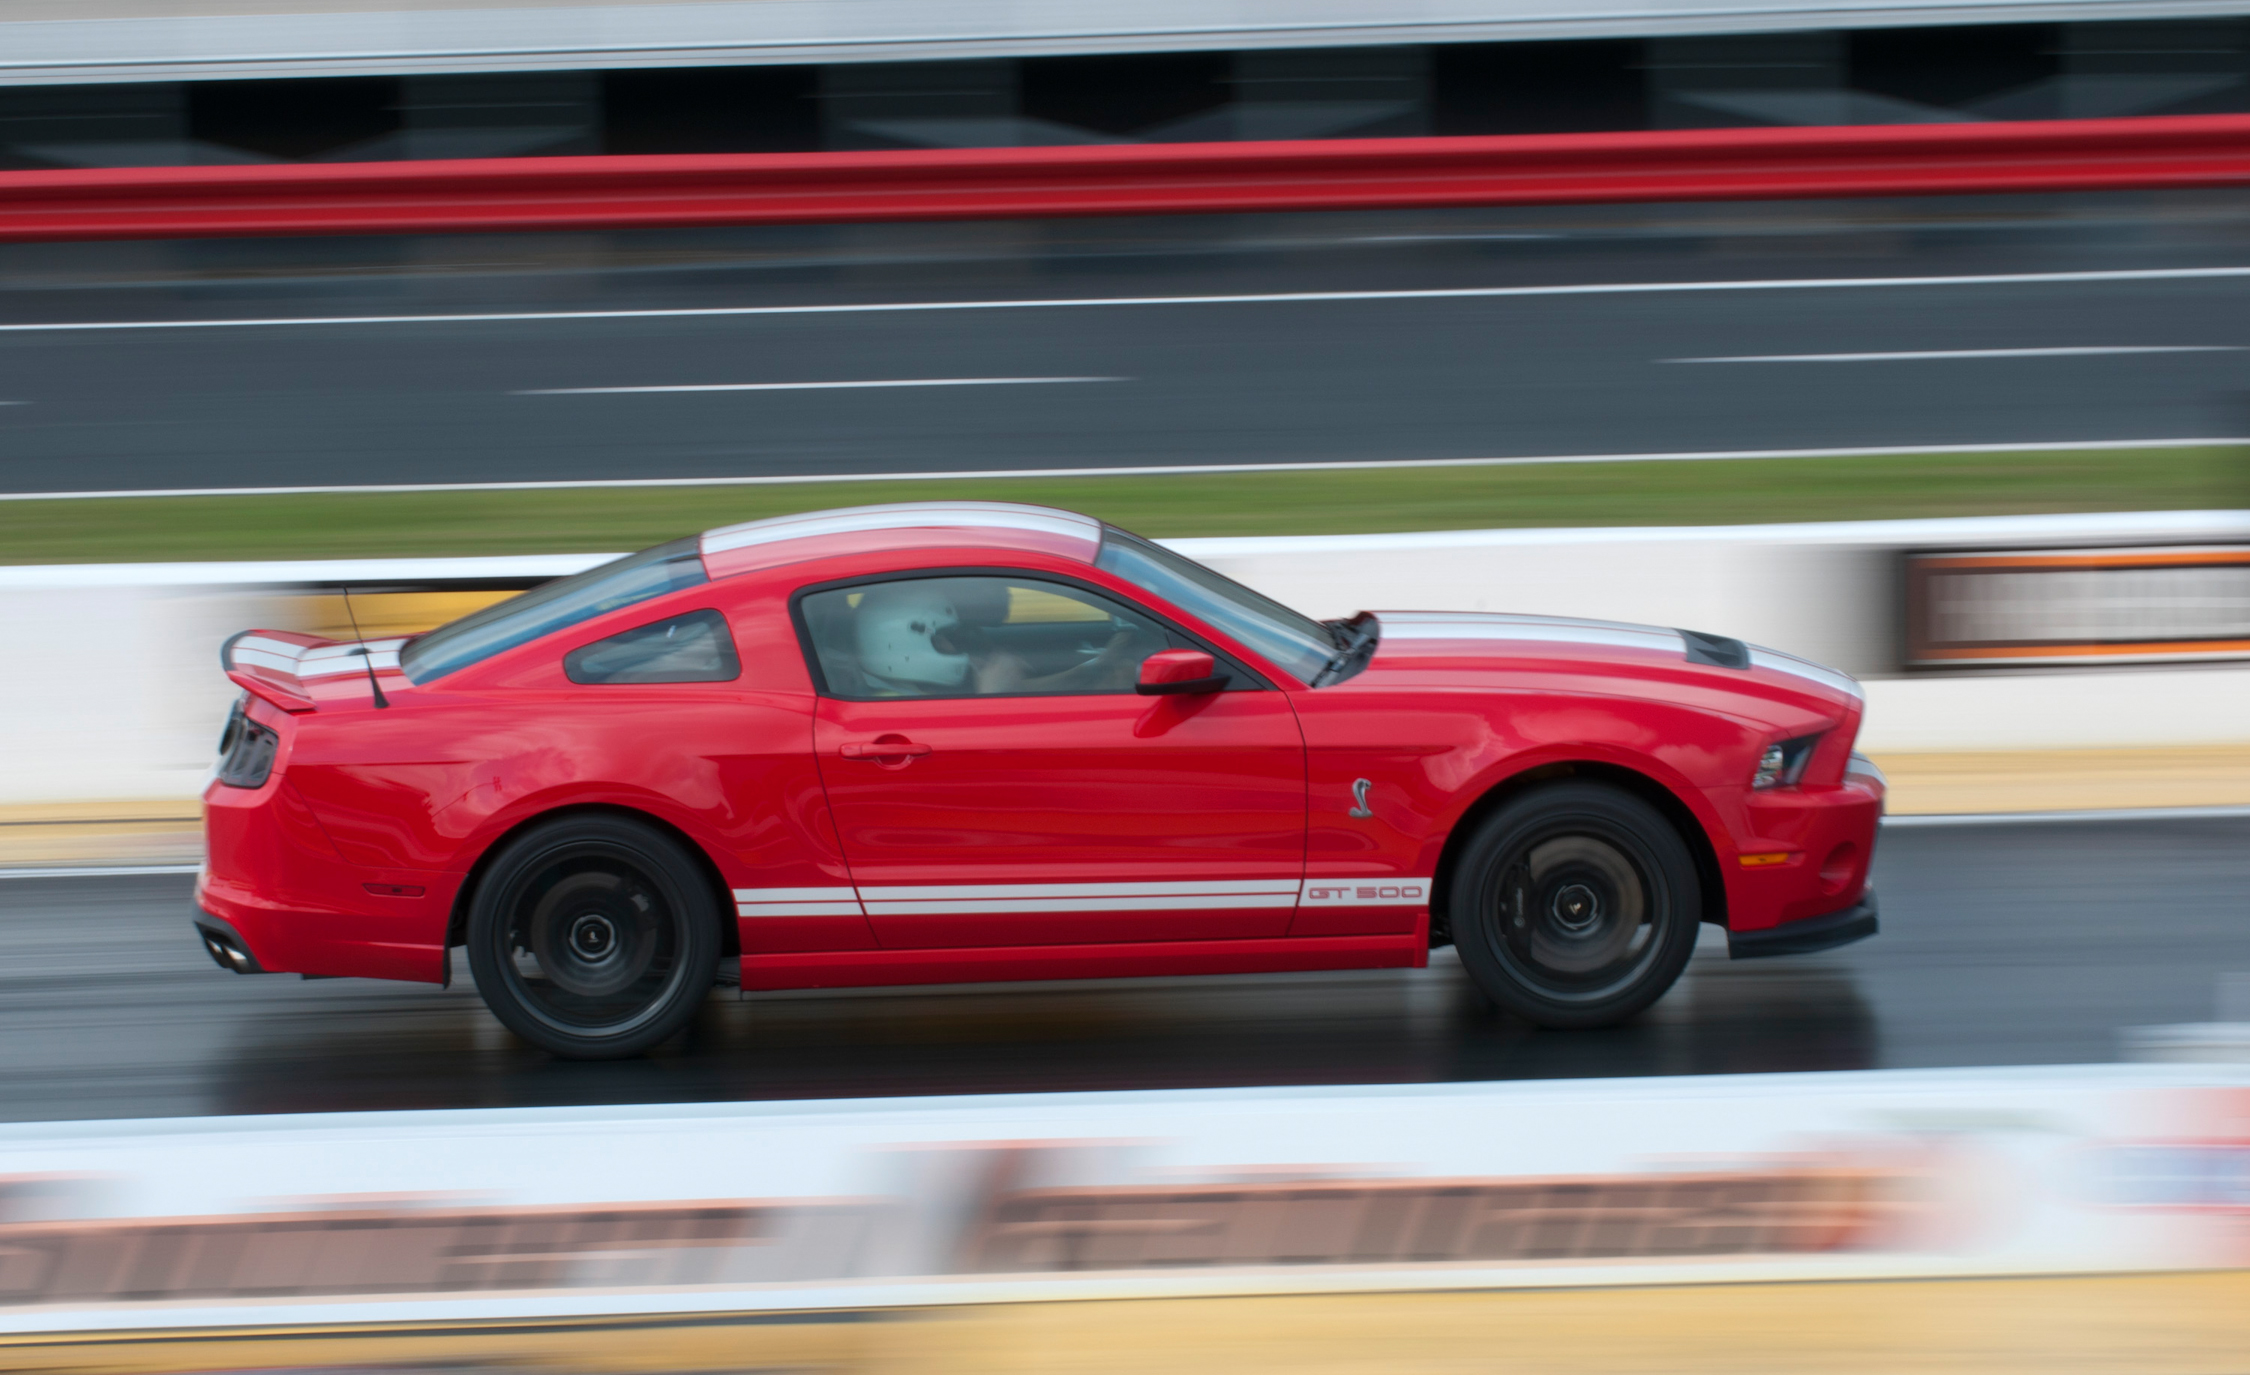 2013 Ford Mustang Shelby GT500 Red Test Drive Performance (View 14 of 47)